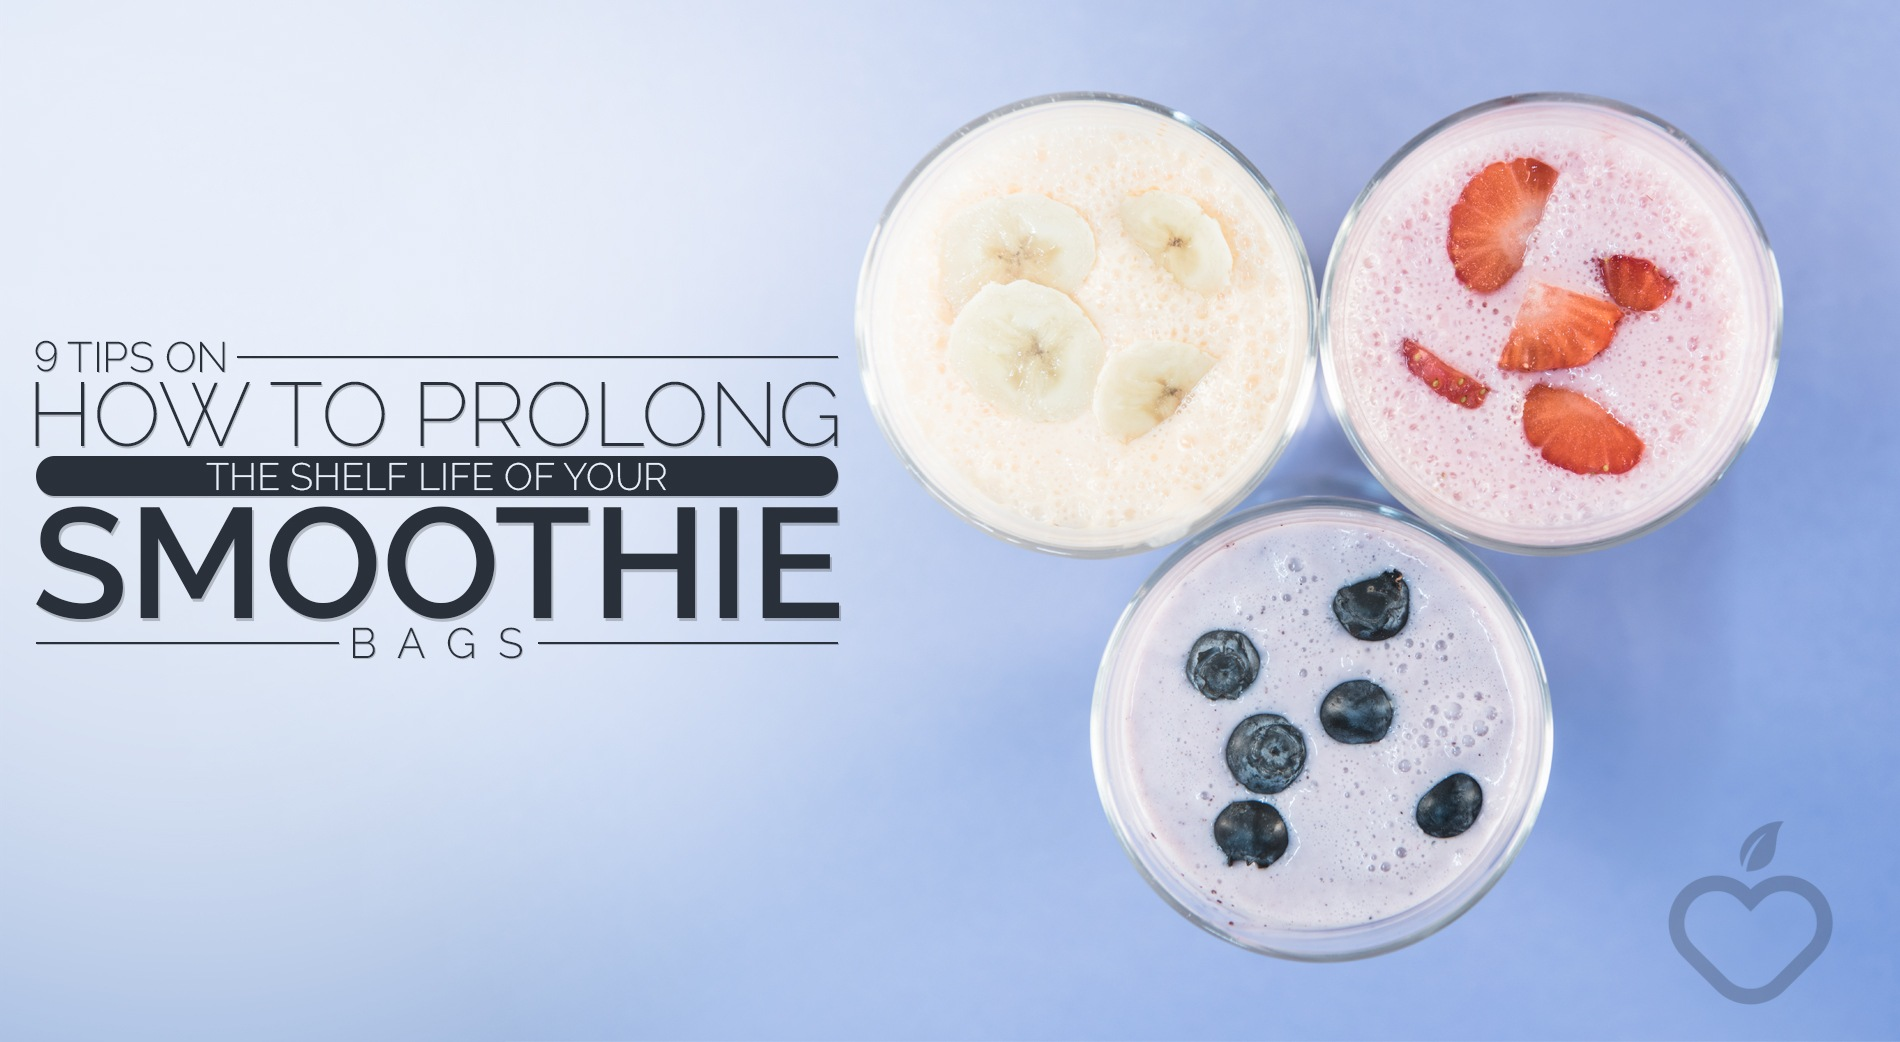 Smoothie Bags Image Design 1 - 9 Tips On How To Prolong The Shelf Life Of Your Smoothie Bags